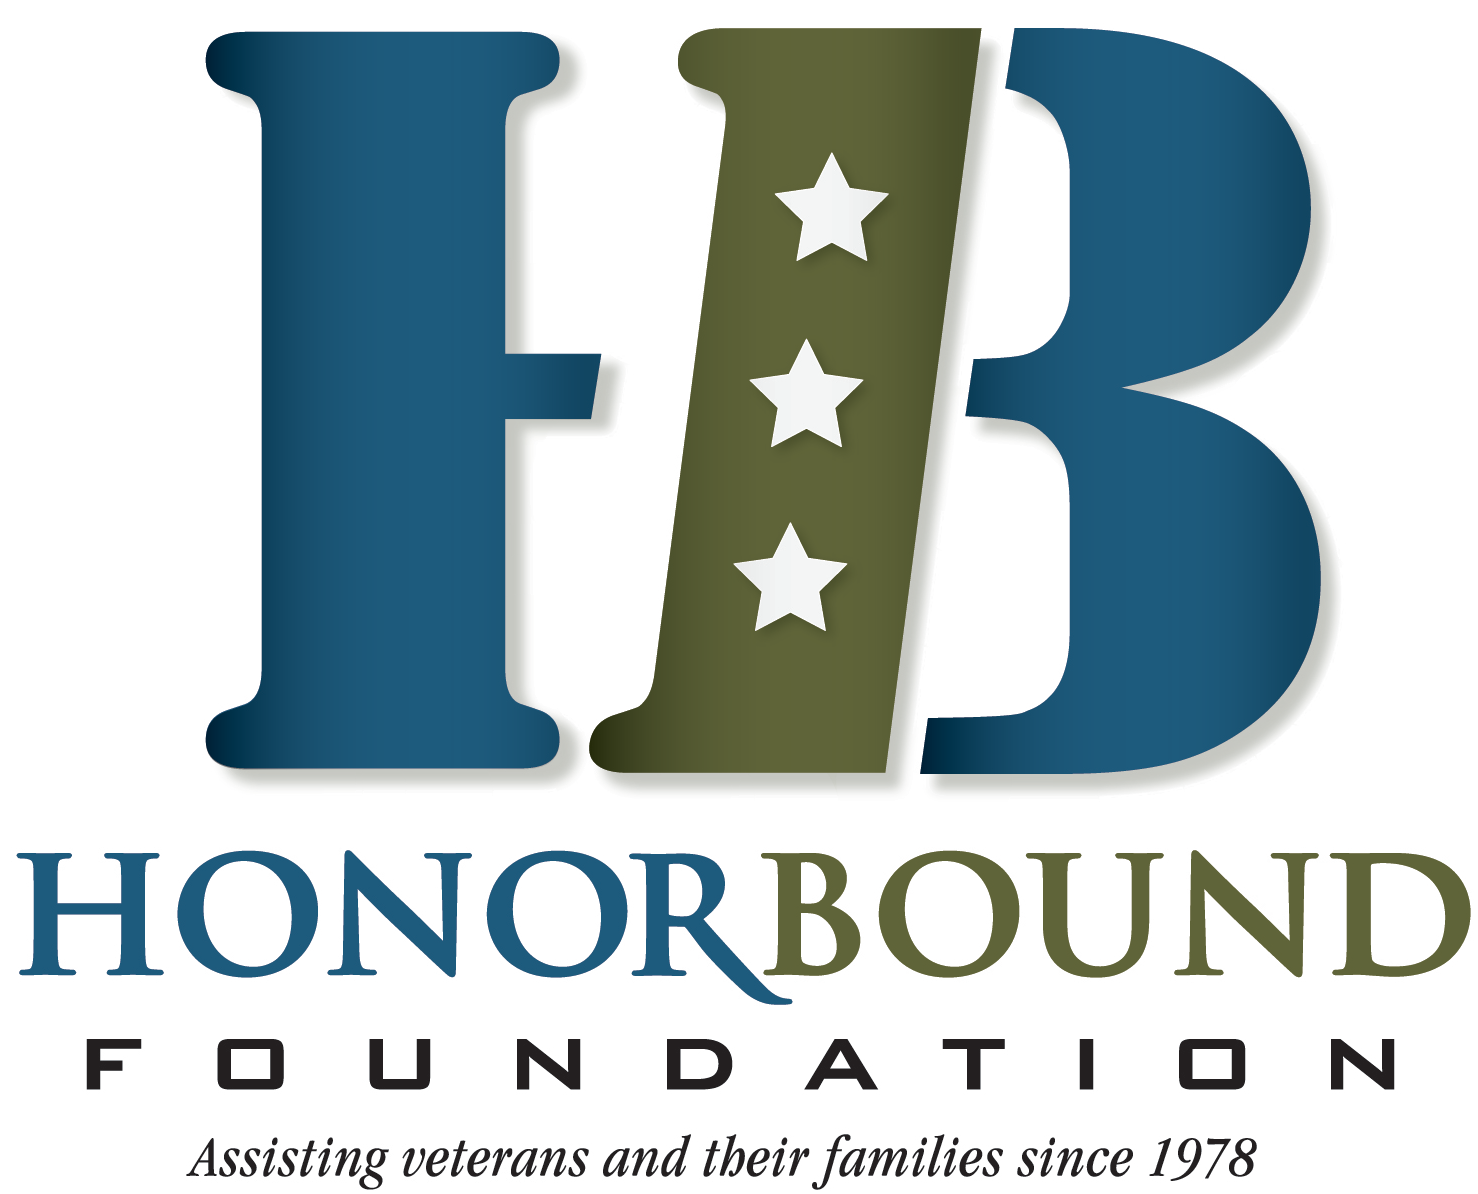 Car Donations in Hawaii - HonorBound Foundation - DonatecarUSA.com